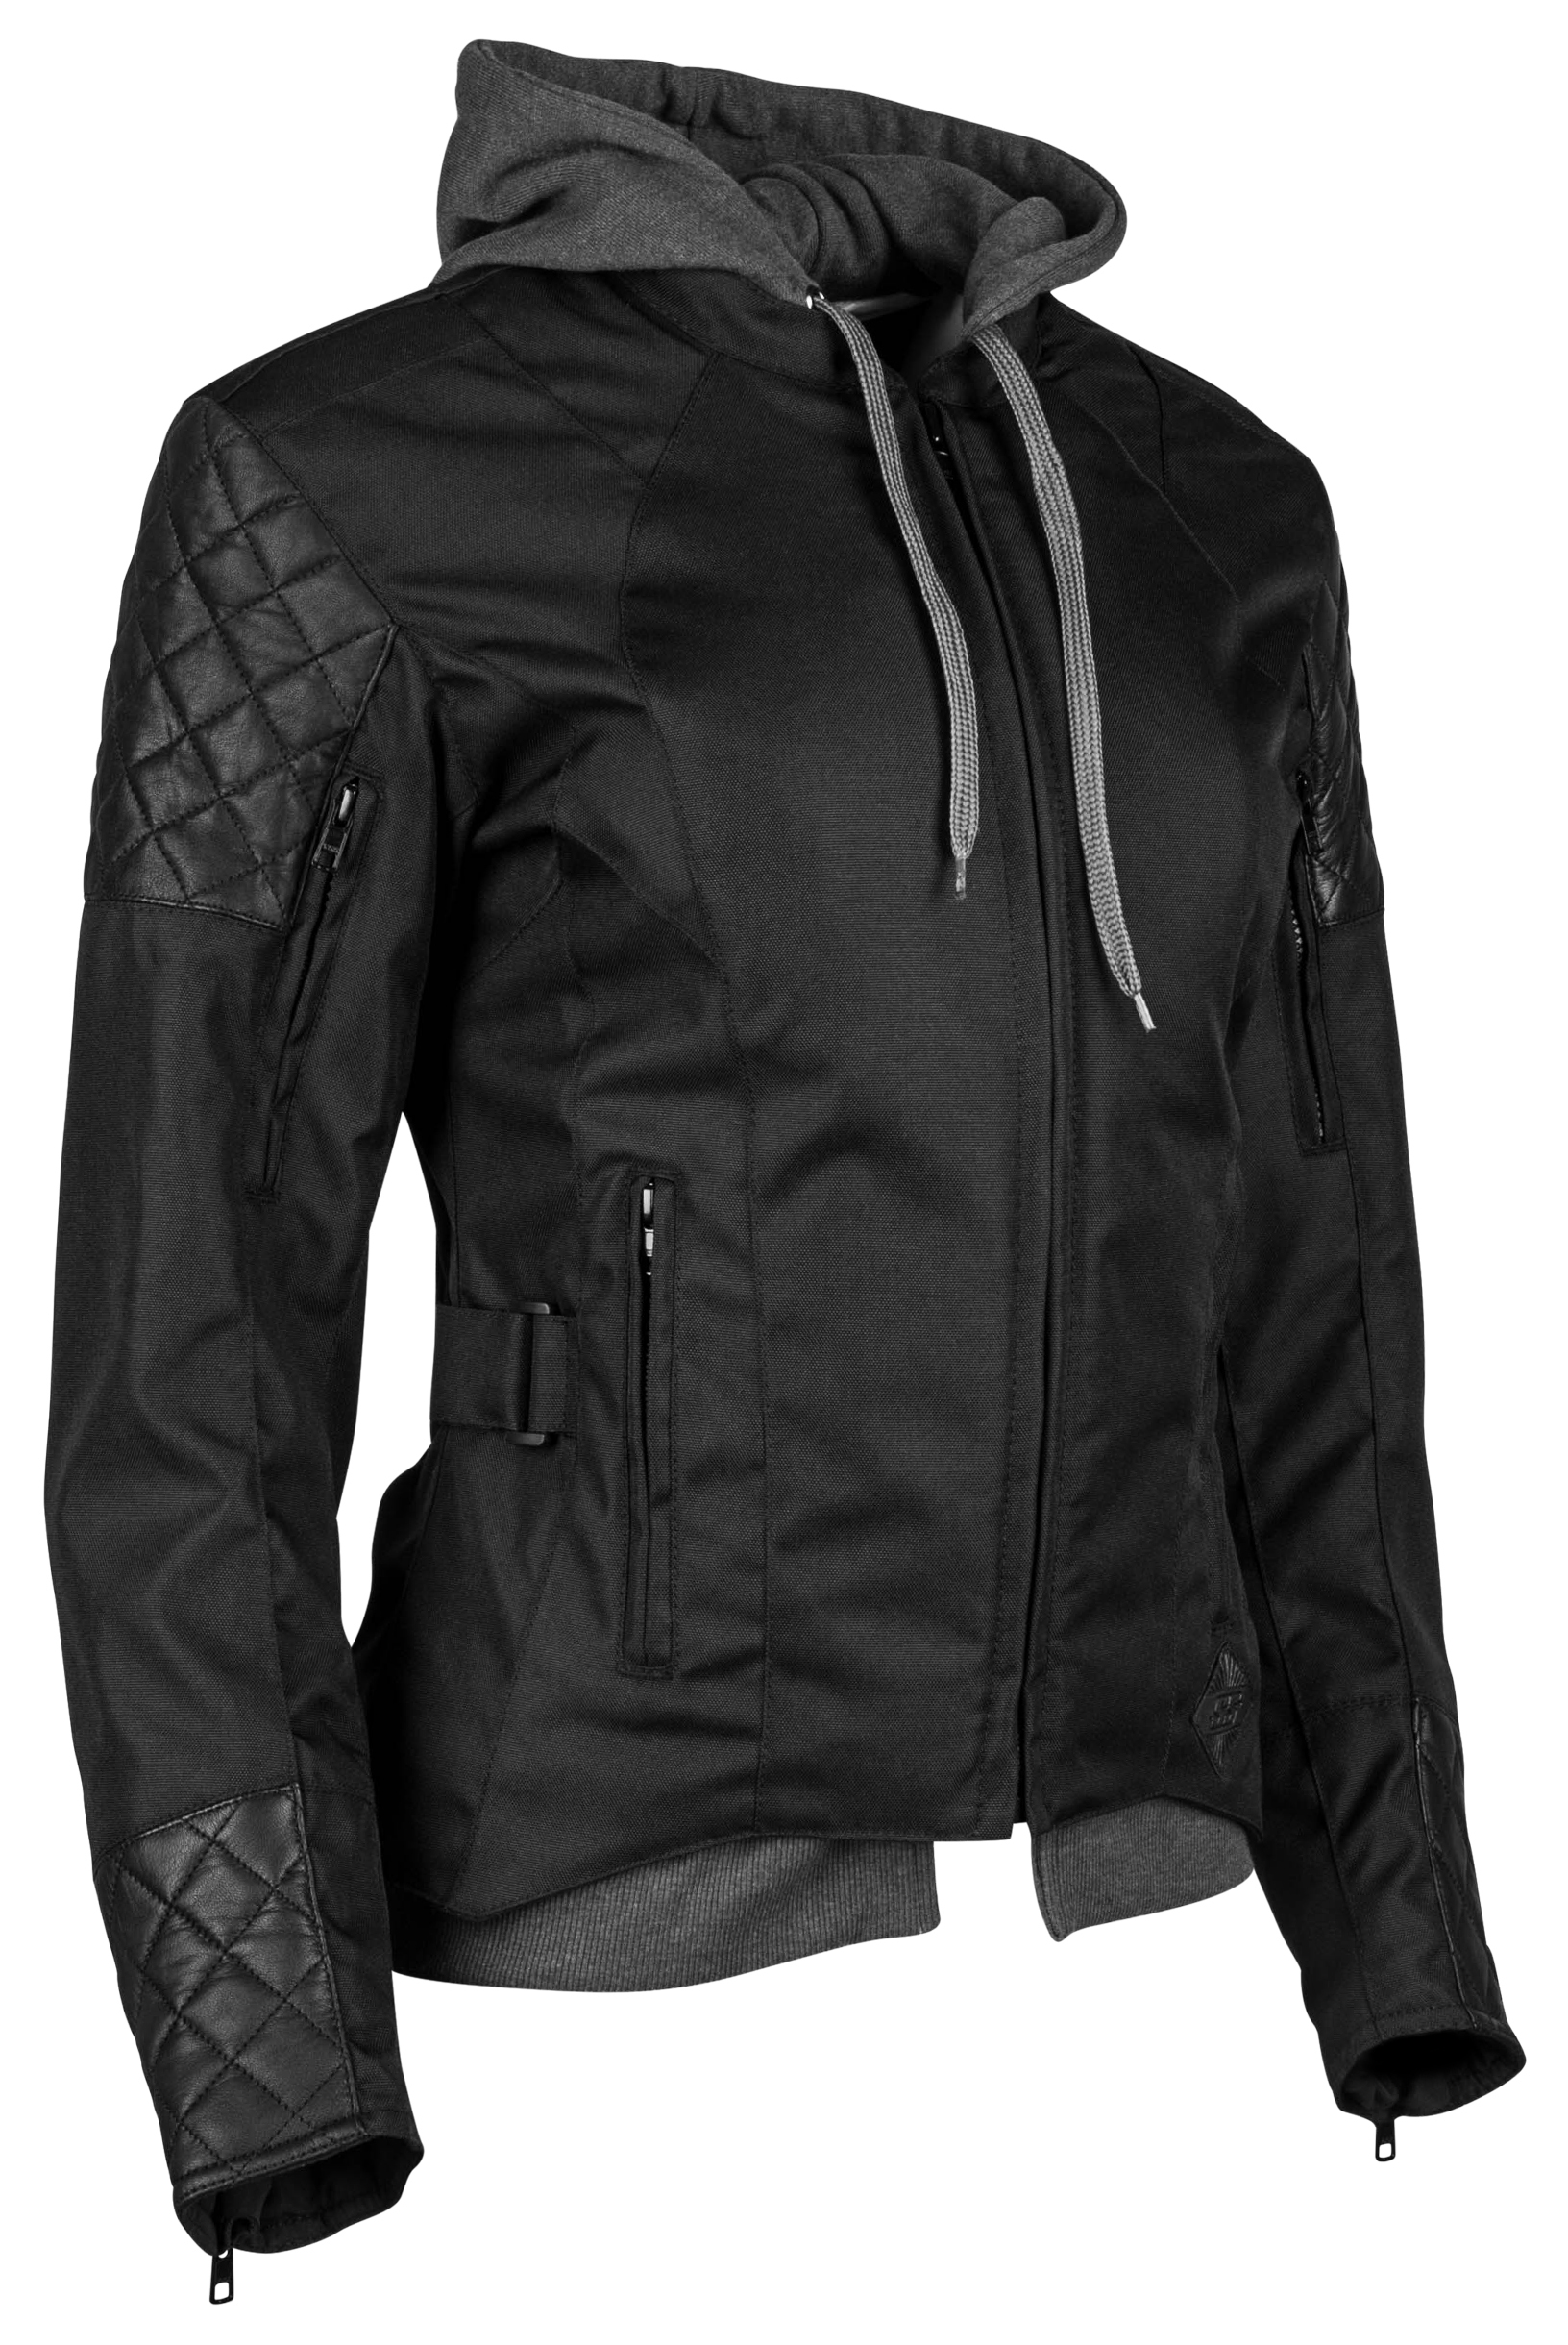 Speed and Strength Double Take Women's Jacket - RevZilla